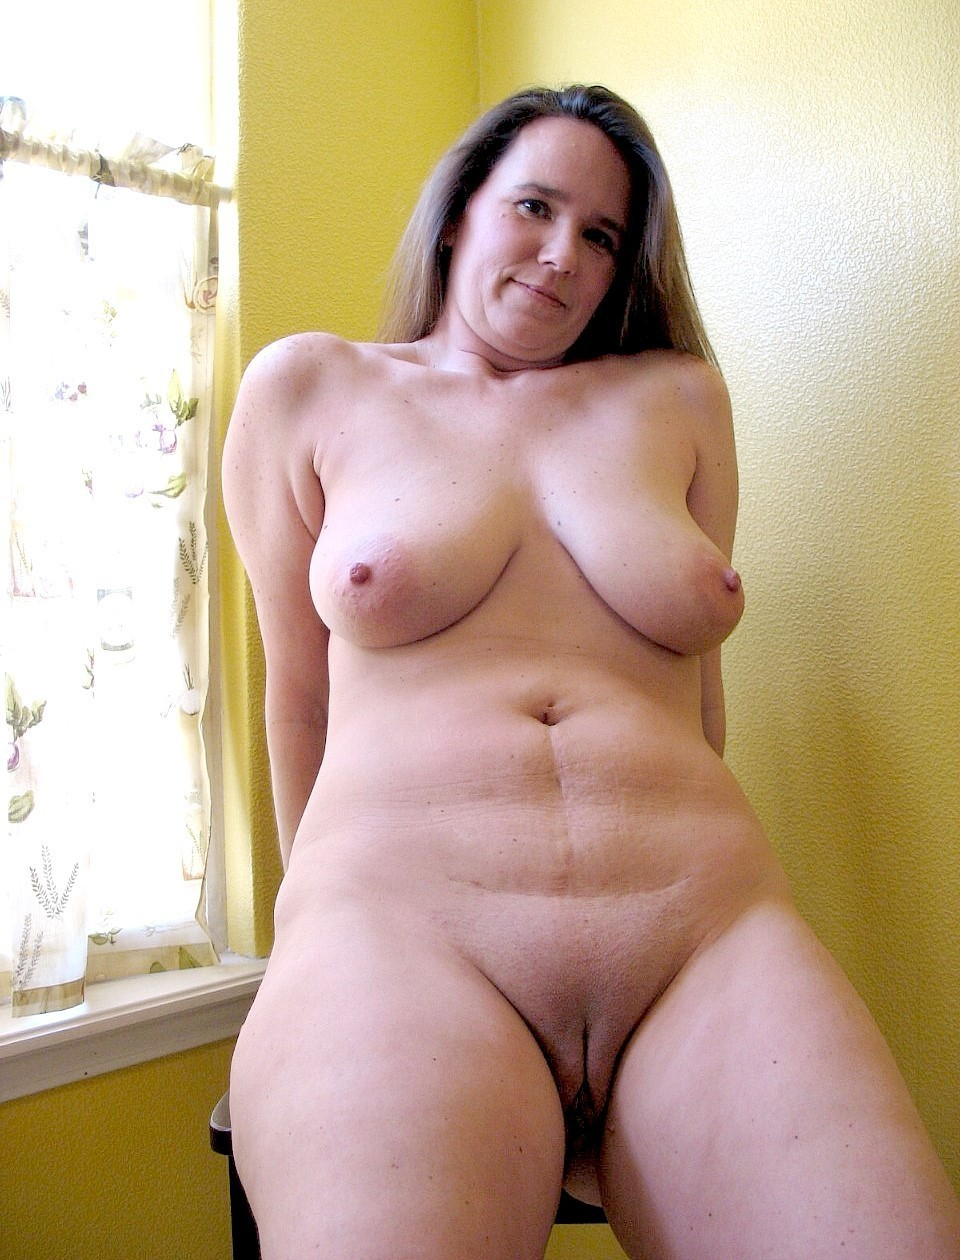 Fat hips of naked women — pic 6